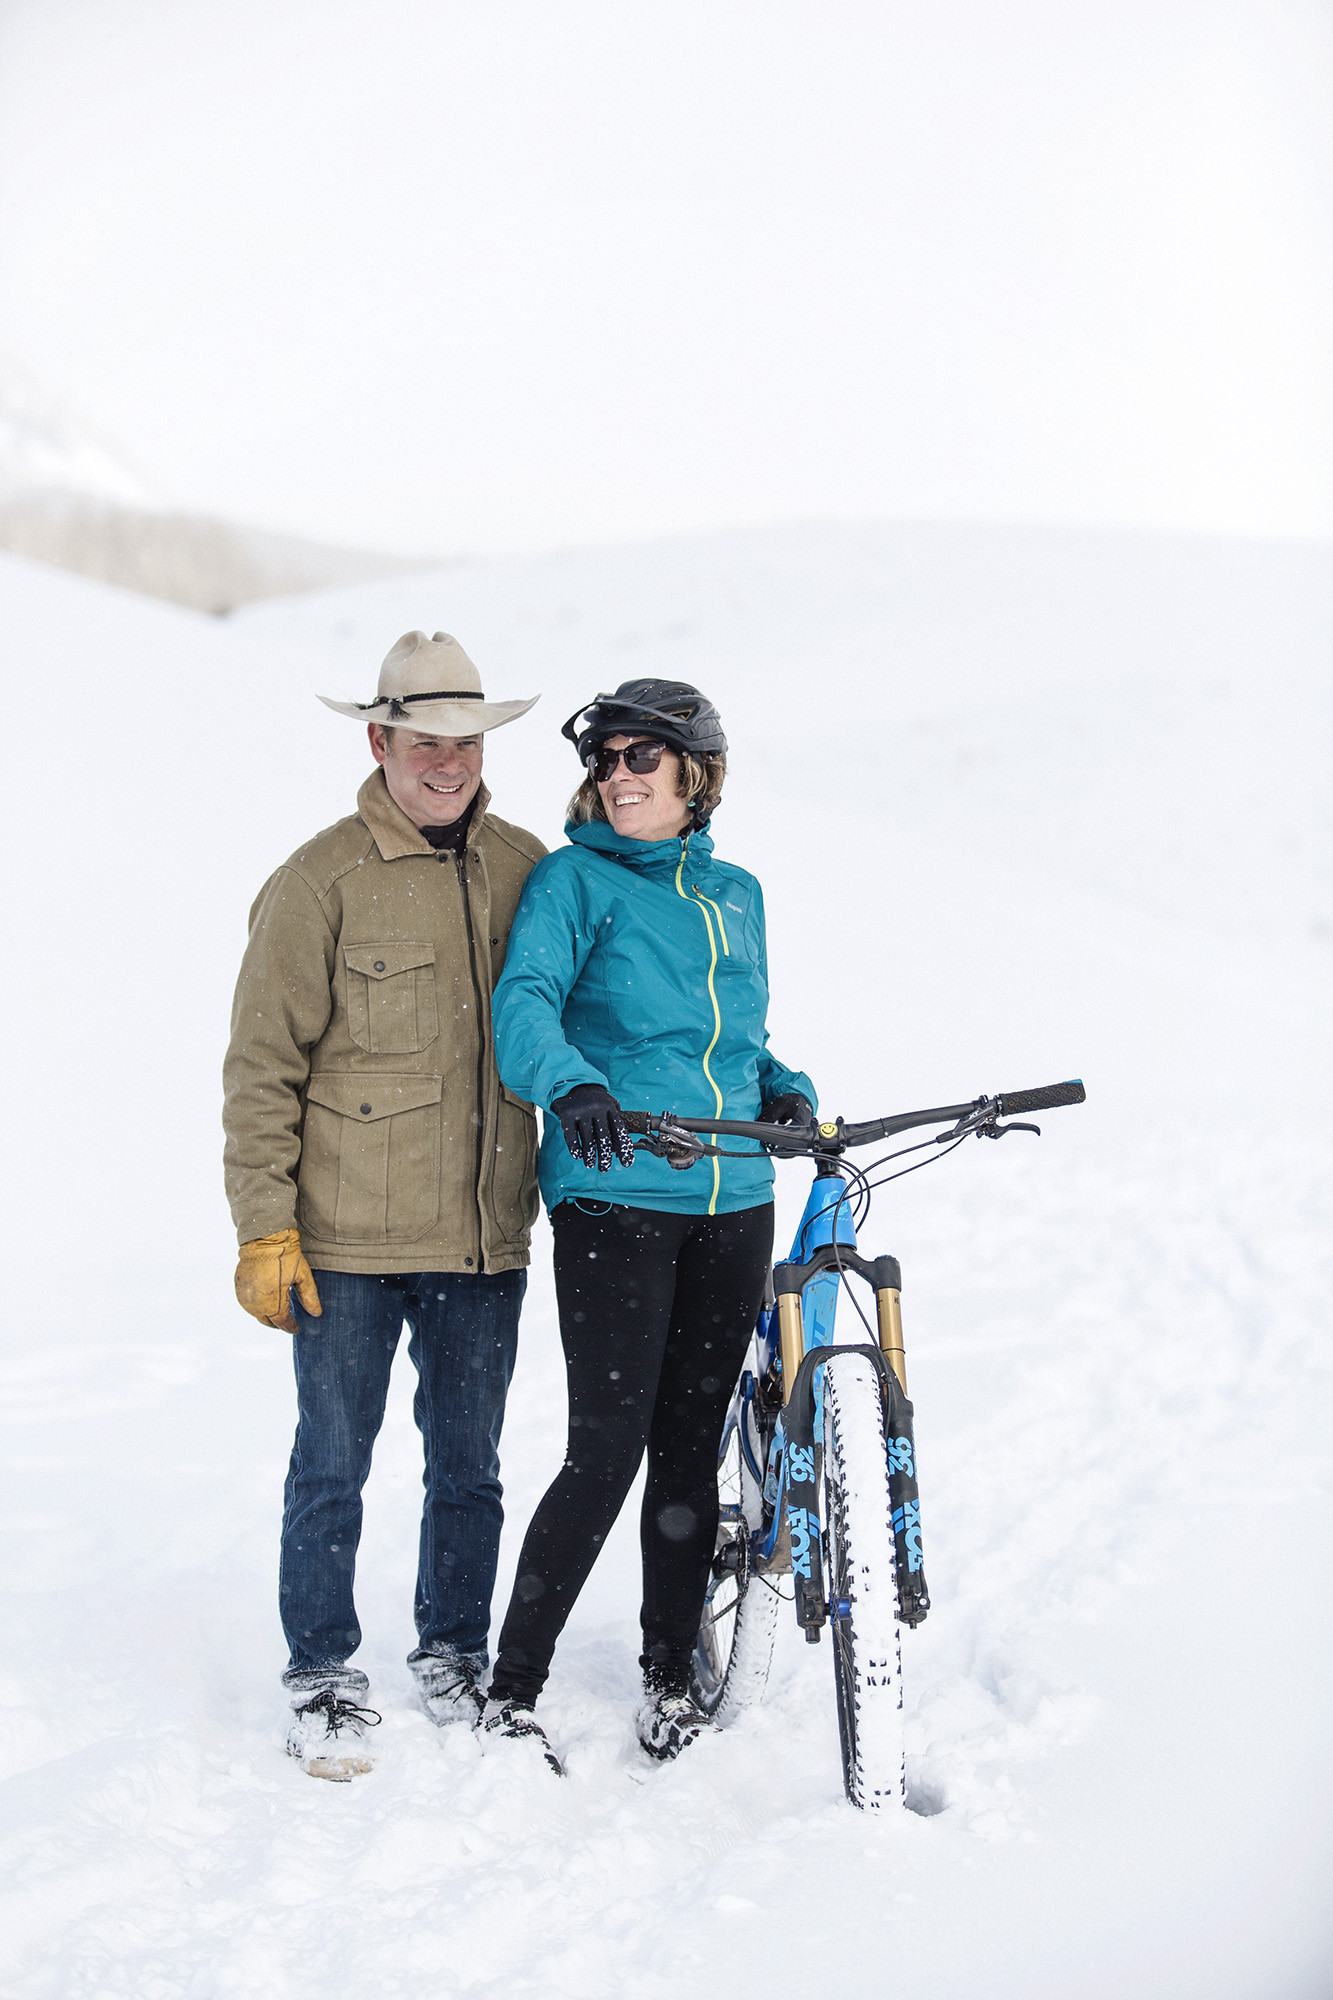 Fat biking in Crested Butte, Colorado photographed for Sunset Magazine. Colorado Editorial Photographer, Denver Editorial Photographer, Montana Editorial Photographer, Boulder Editorial Photographer.